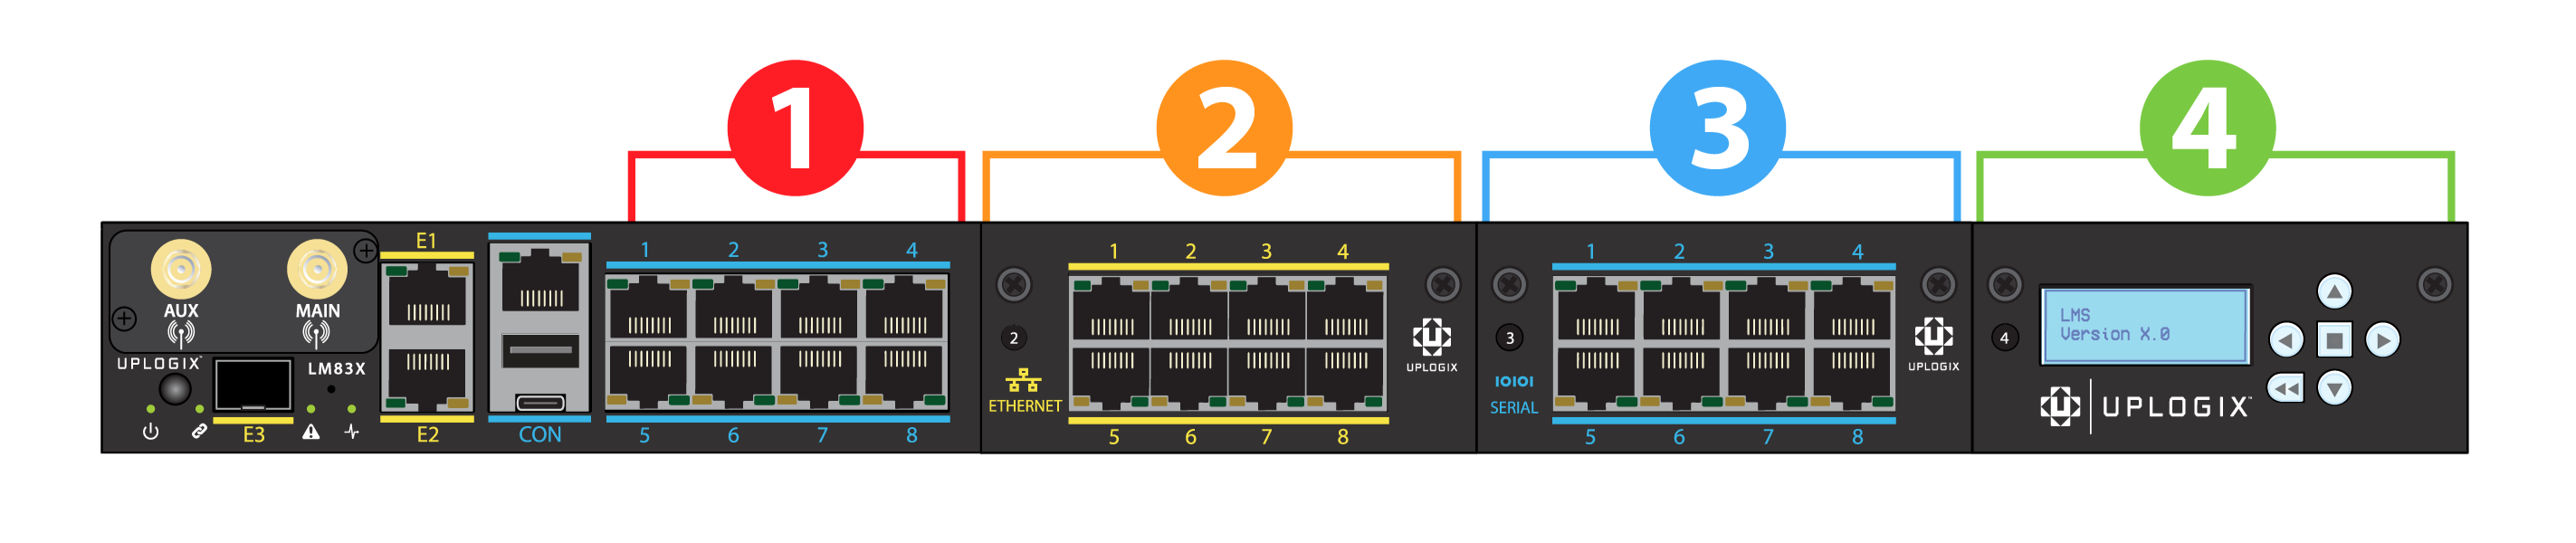 Uplogix LM83X Local Manager Slot Numbers